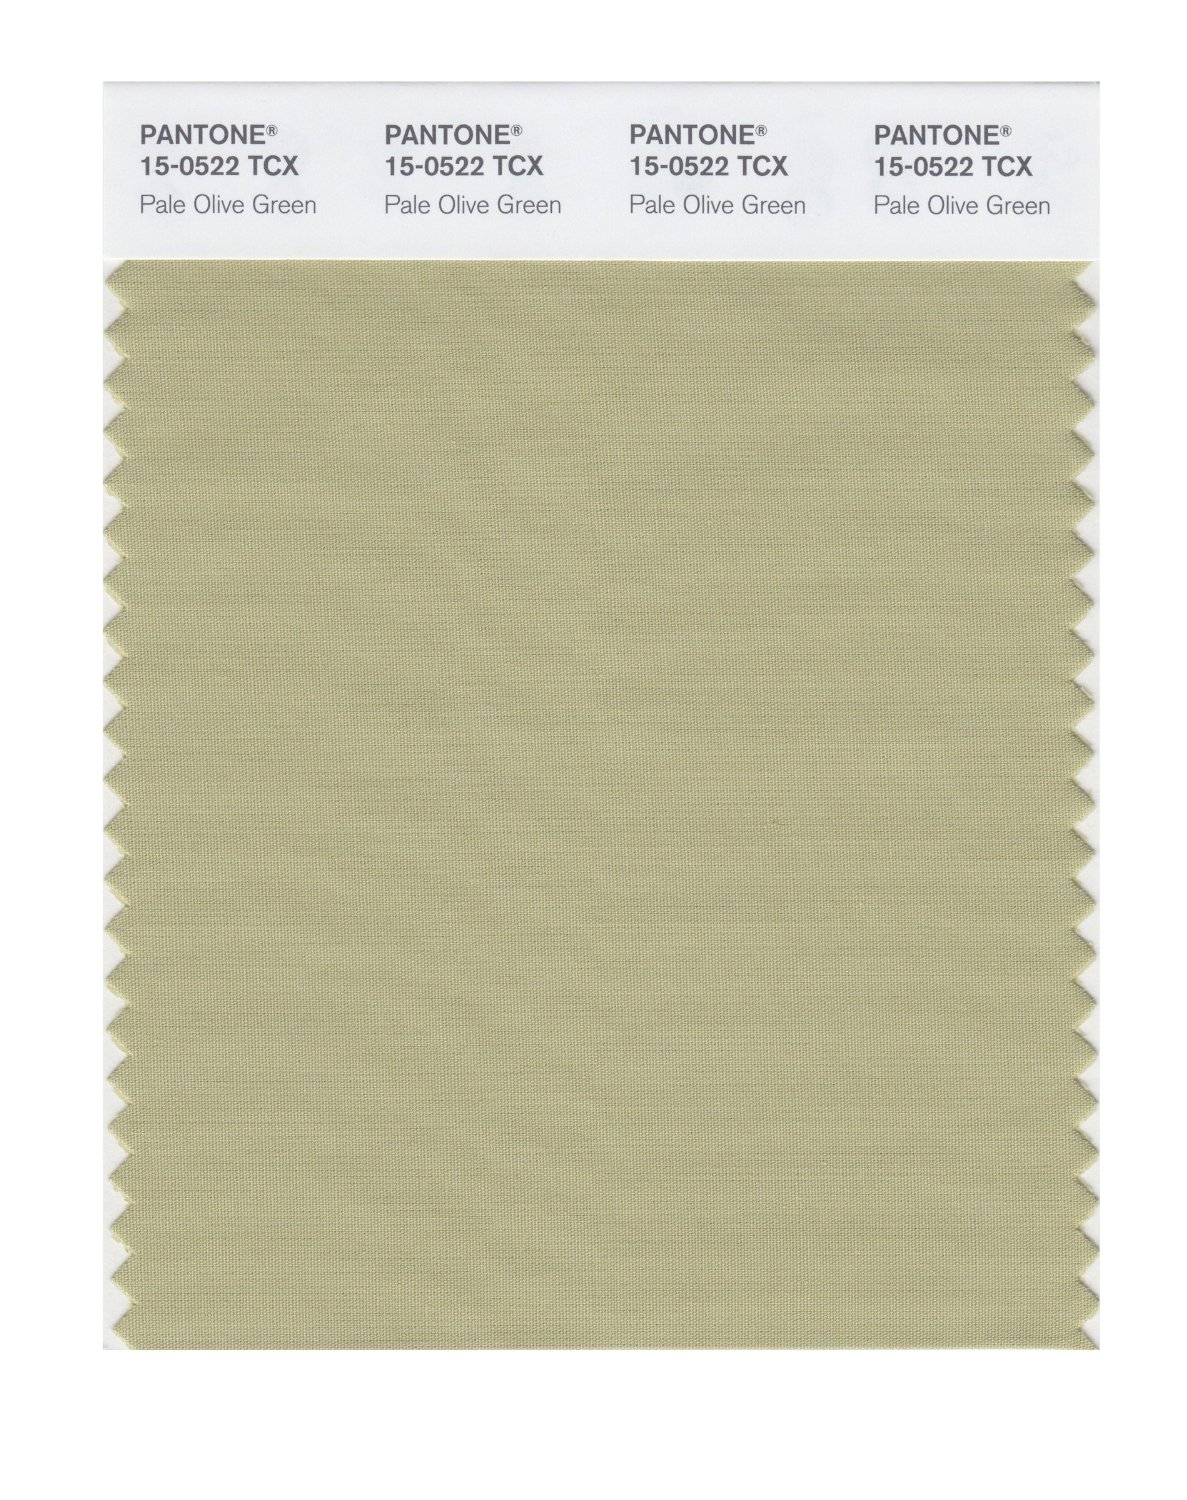 Pantone Smart Swatch 15-0522 Pale Olive Green